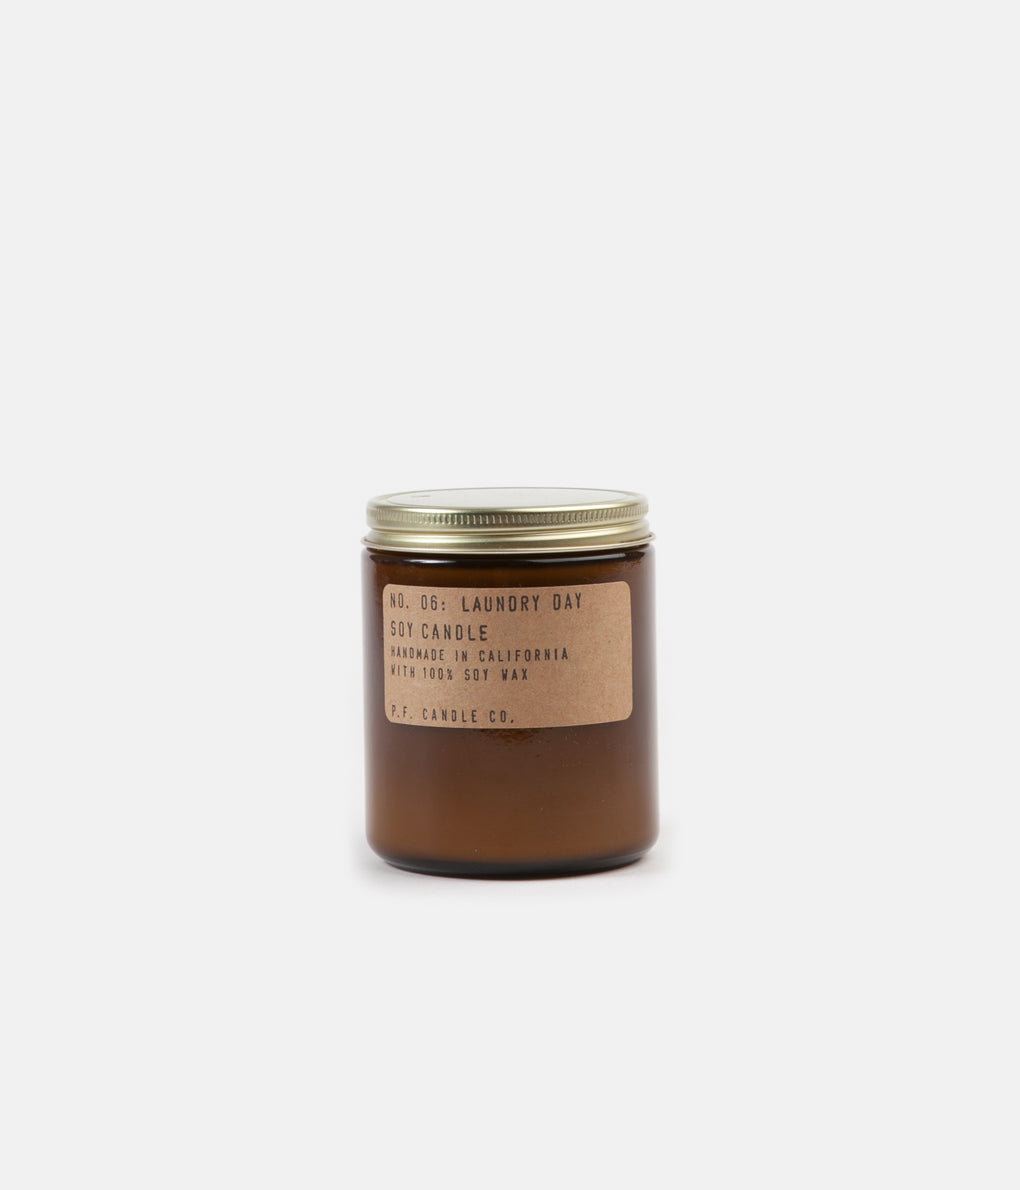 P.F. Candle Co. No. 6 Laundry Day Soy Candle - 7.2oz